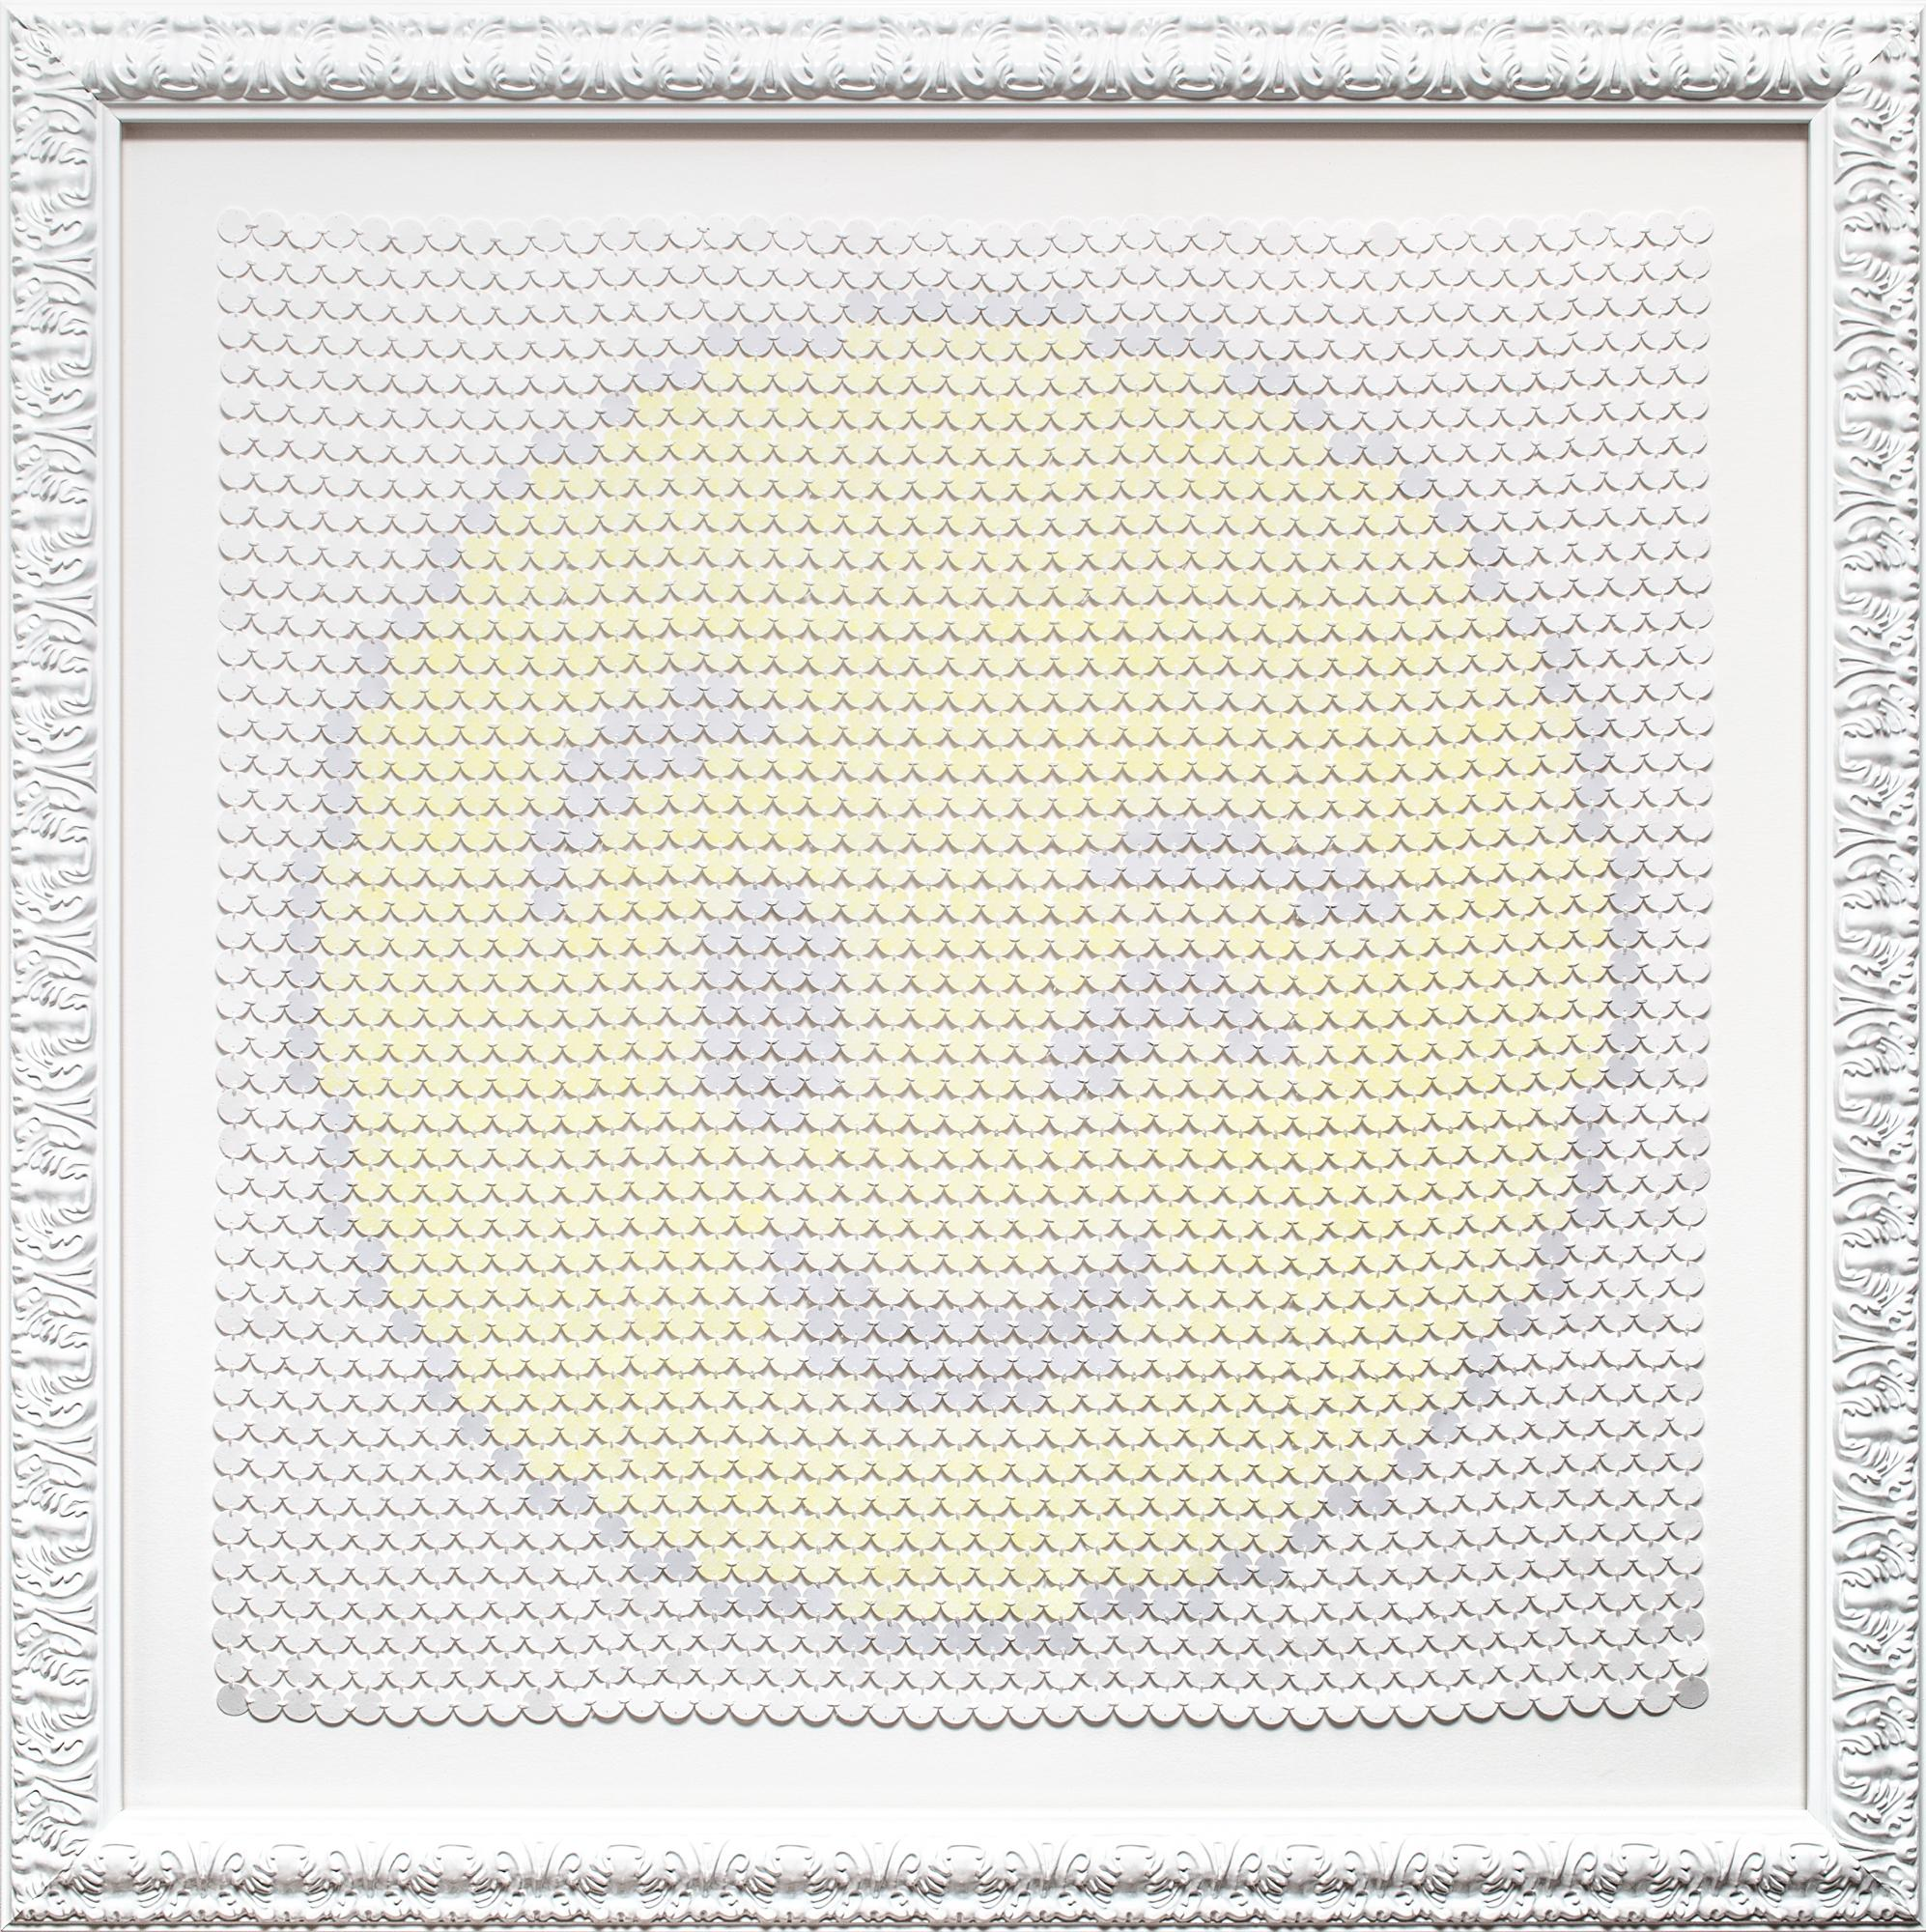 """""""Smiling Underneath"""", Winking Face, Yellow and White, Hand-Stitched"""